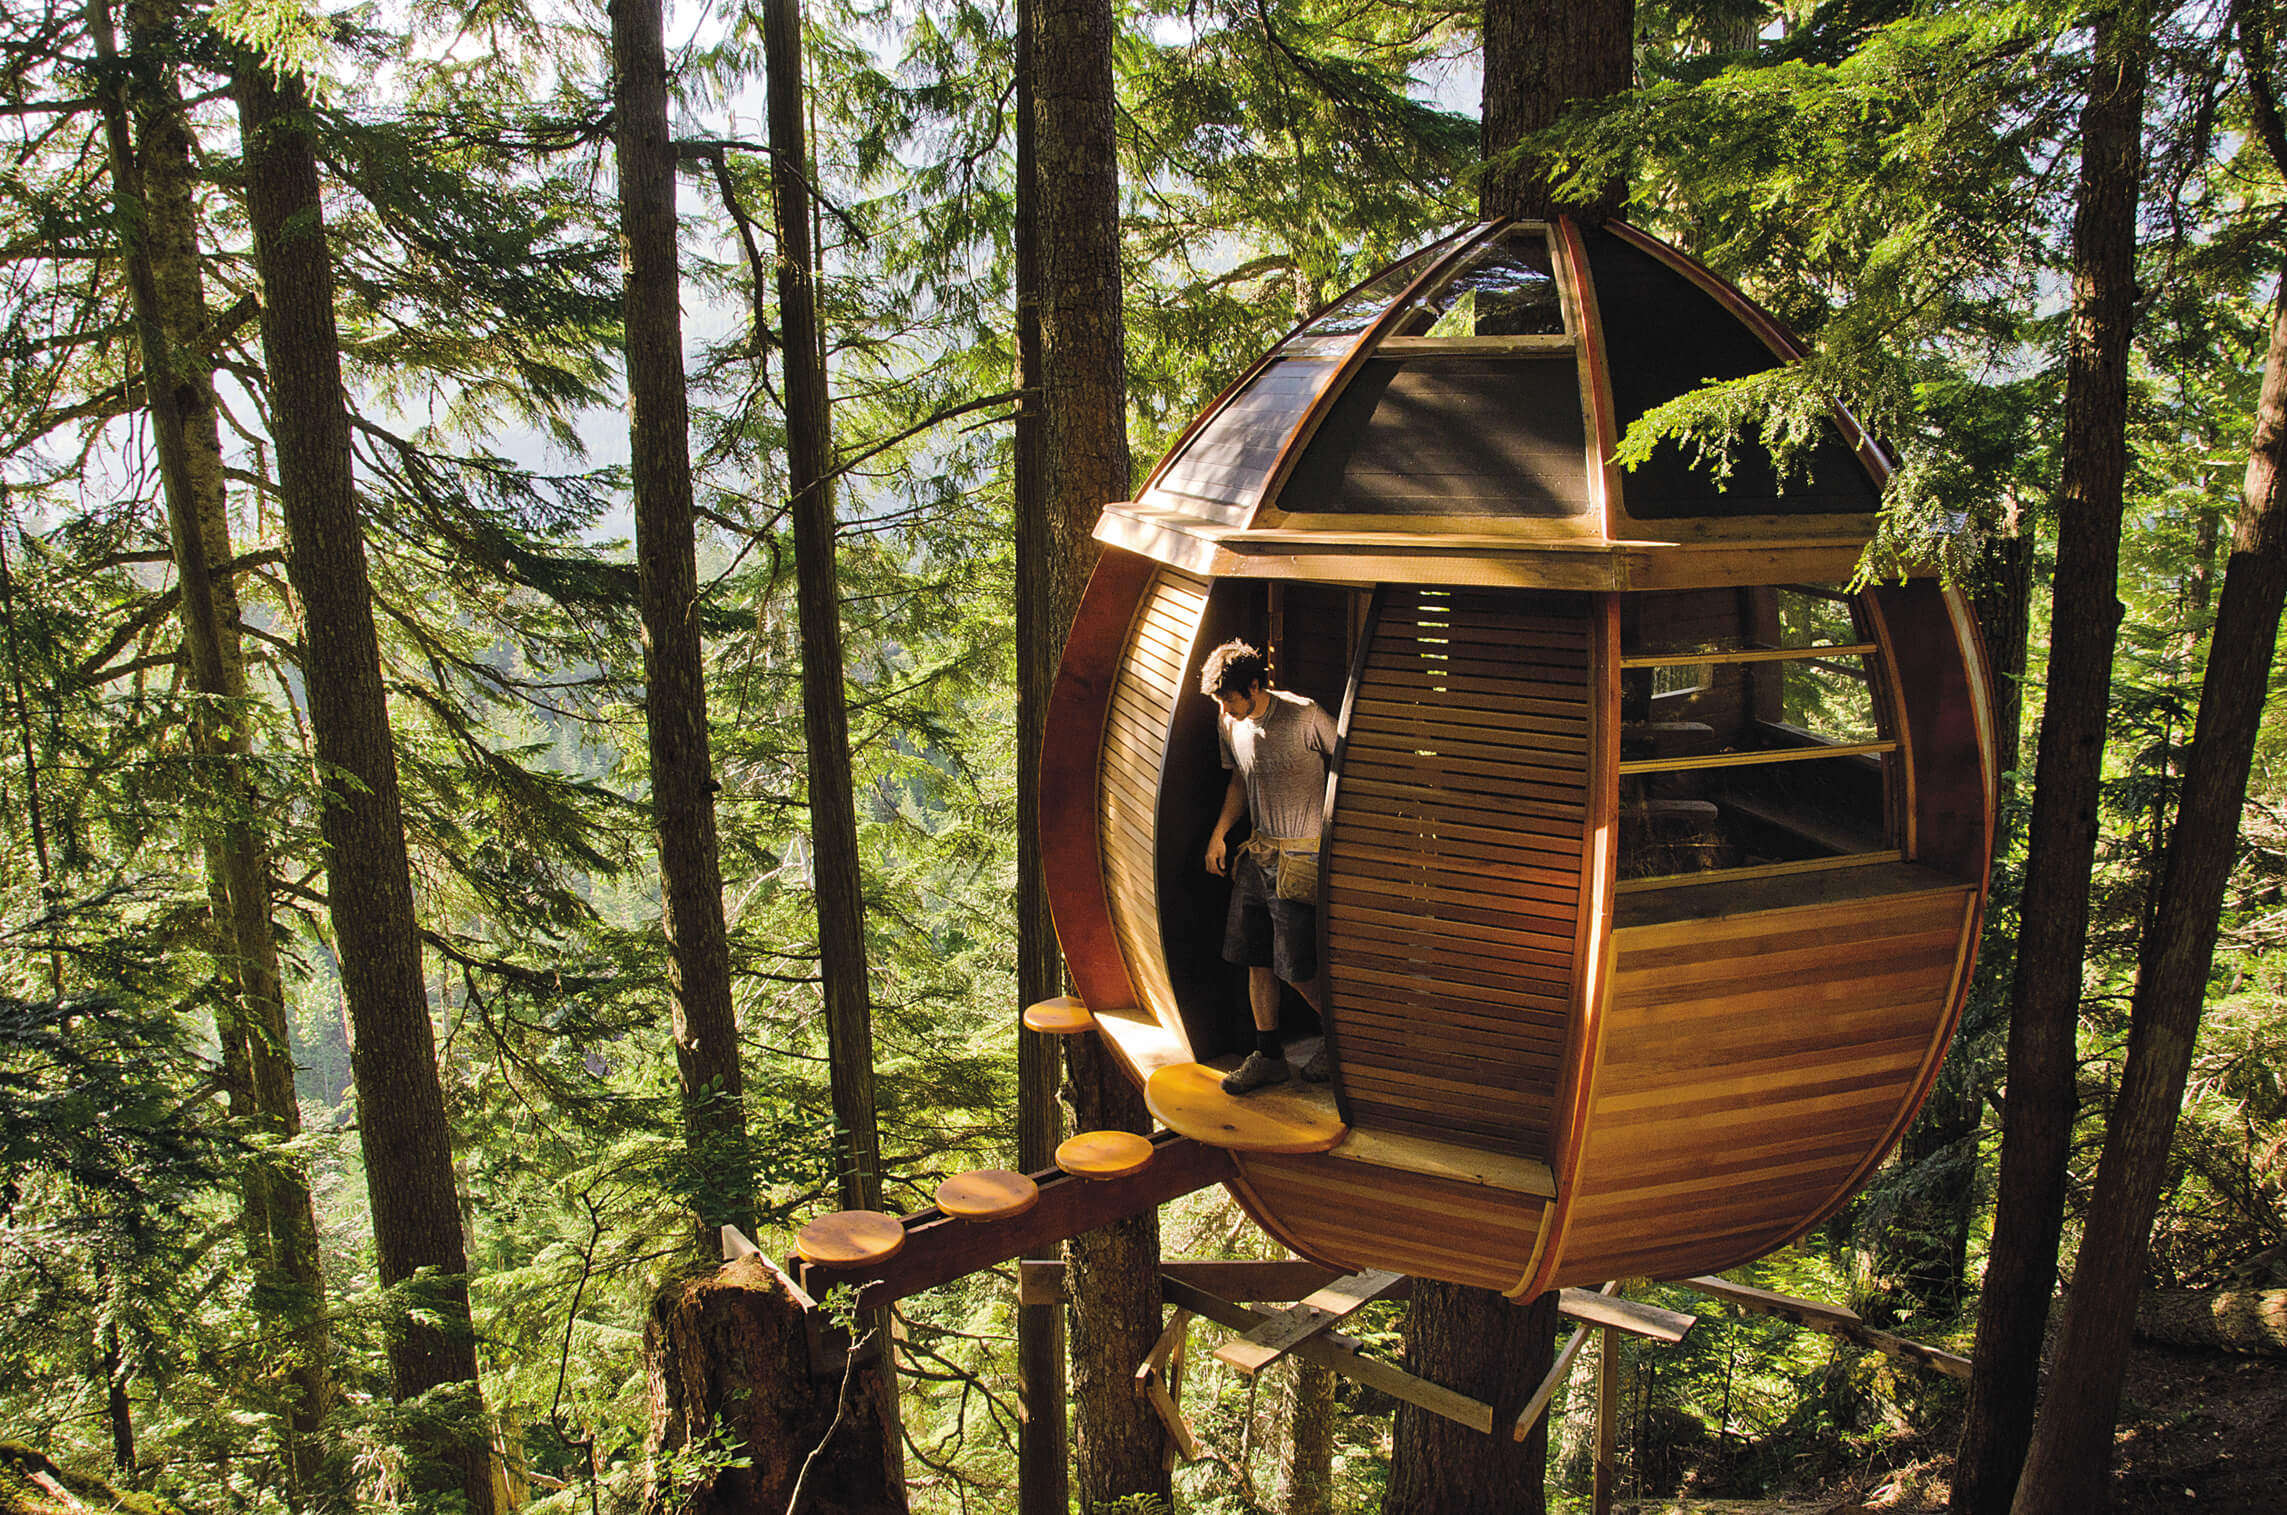 A man coming out of the Hemloft Treehouse in Whistler in Canada